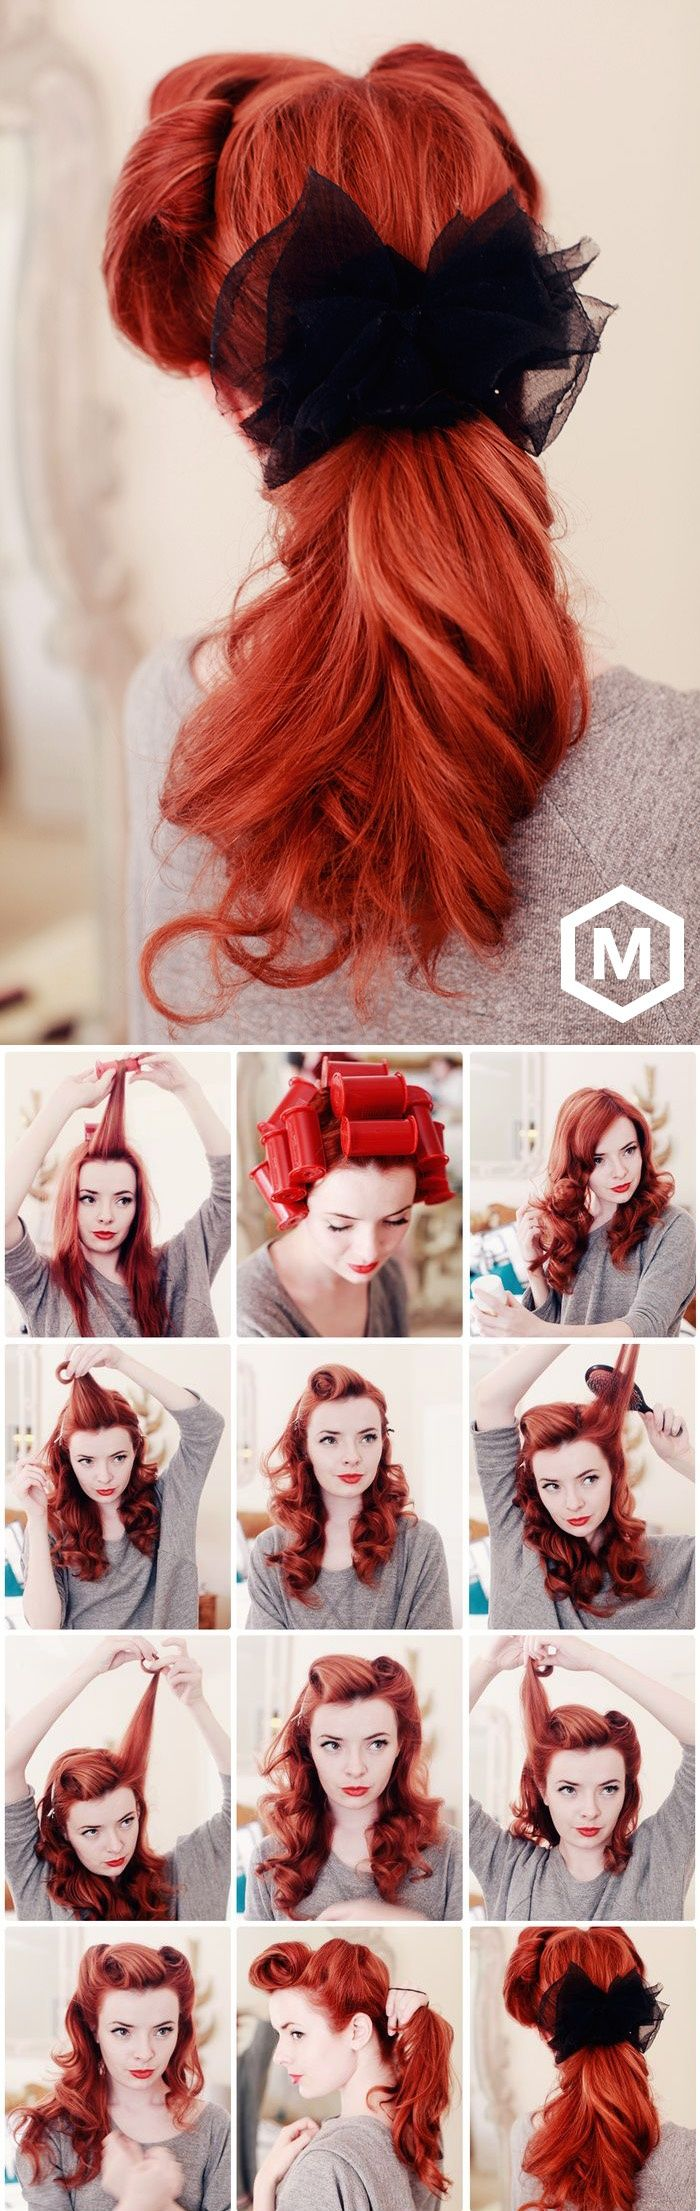 hair styling tutorial diy retro ponytail tutorial diy tutorials and 7145